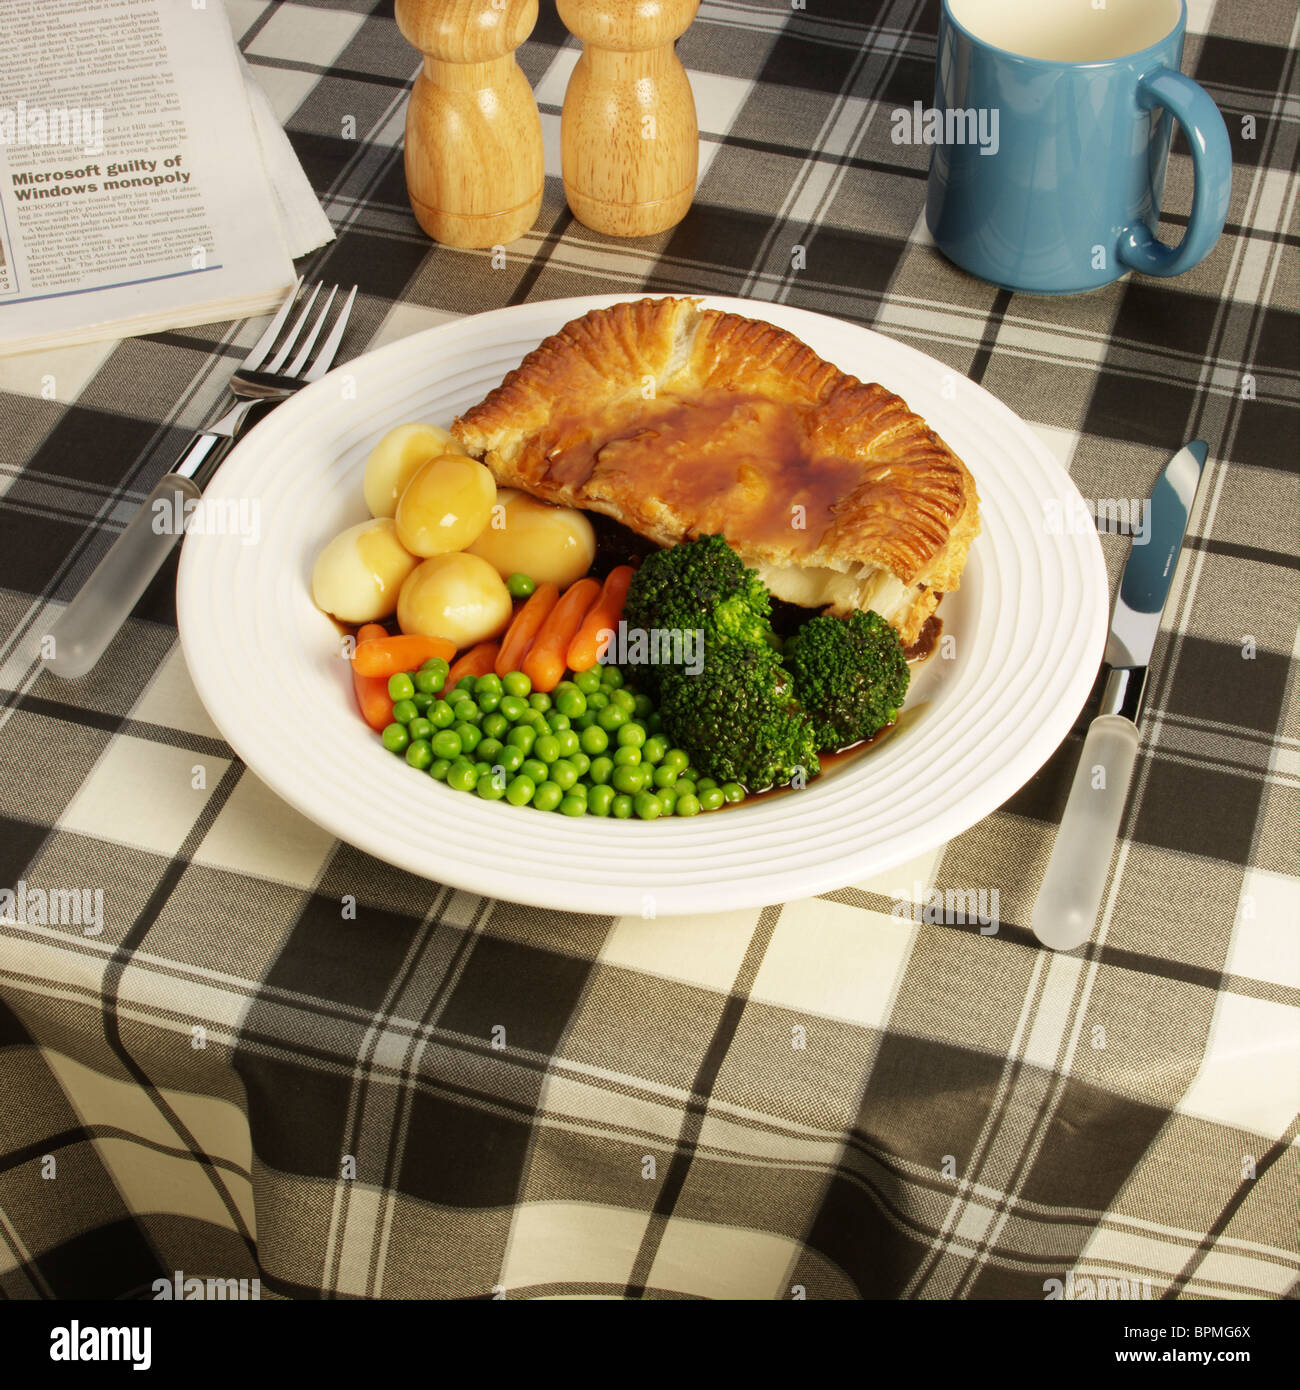 Cafe meal - Stock Image